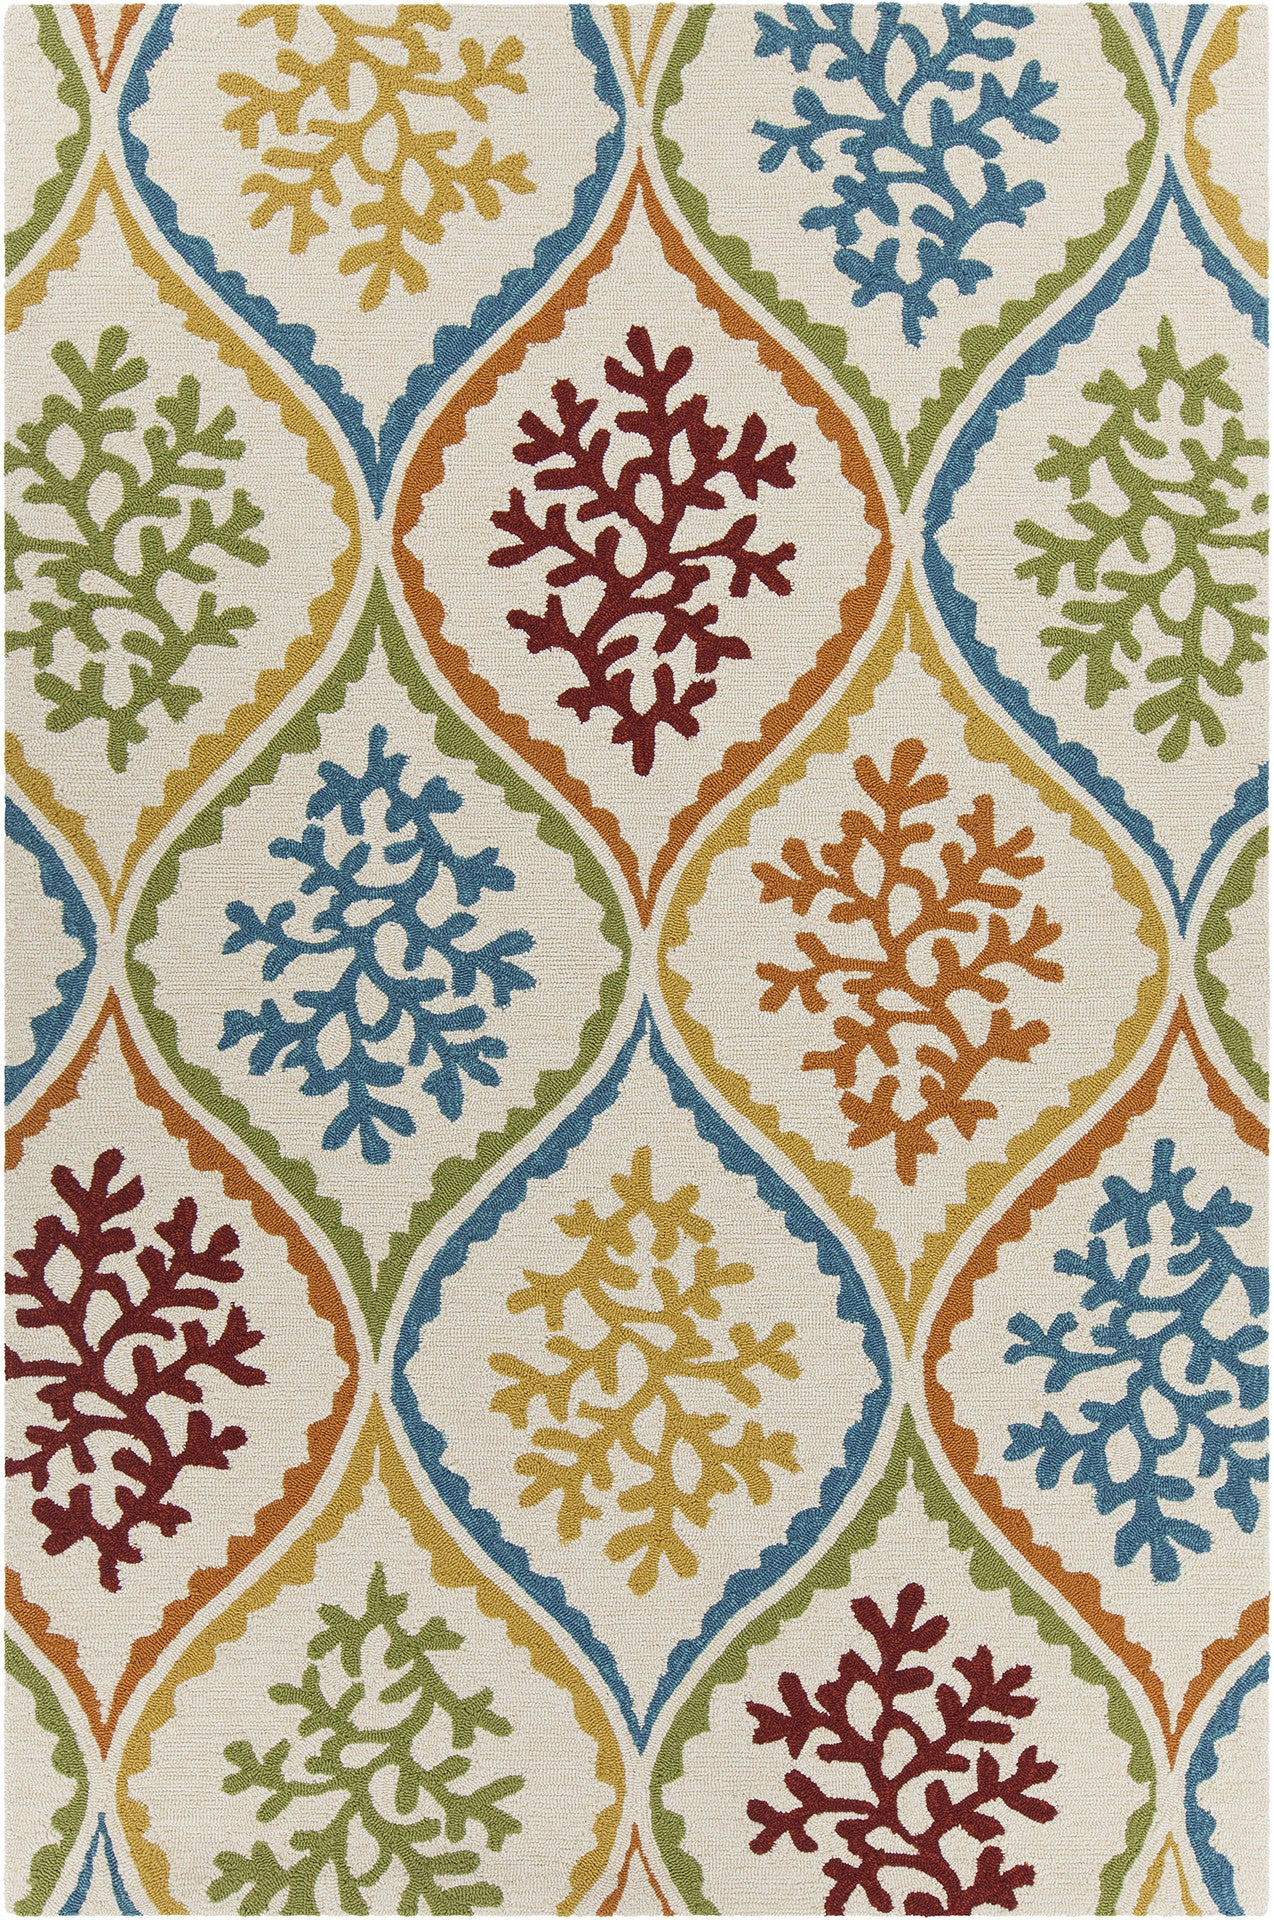 Terra Collection Hand Tufted Area Rug In Cream Blue Green Red Burke Decor